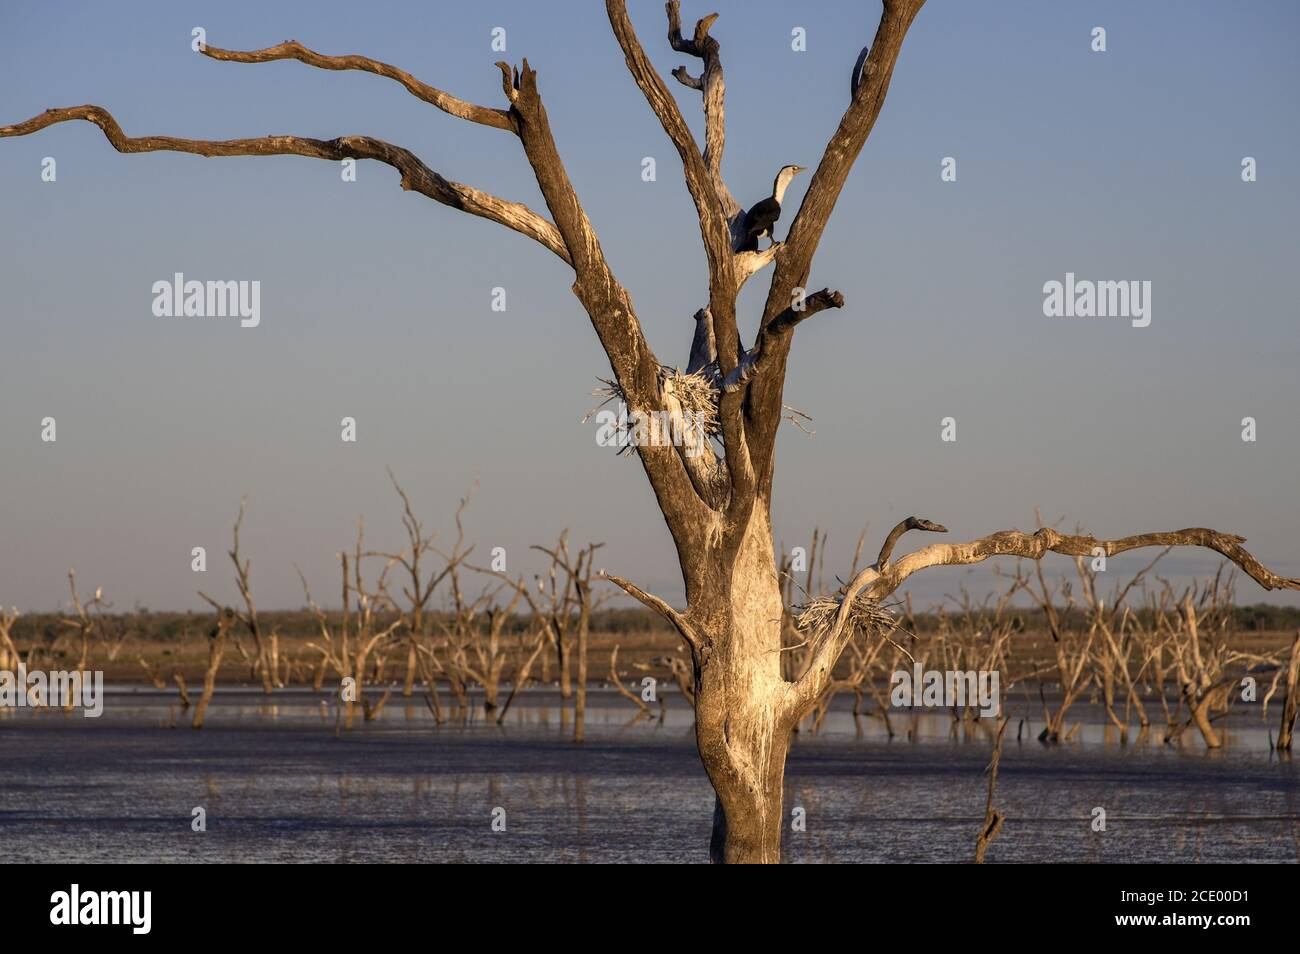 Dead trees at the swamp of Lake Argyle at twilight with a pied cormorant breeding in a nest at the outback in Western Australia Stock Photo